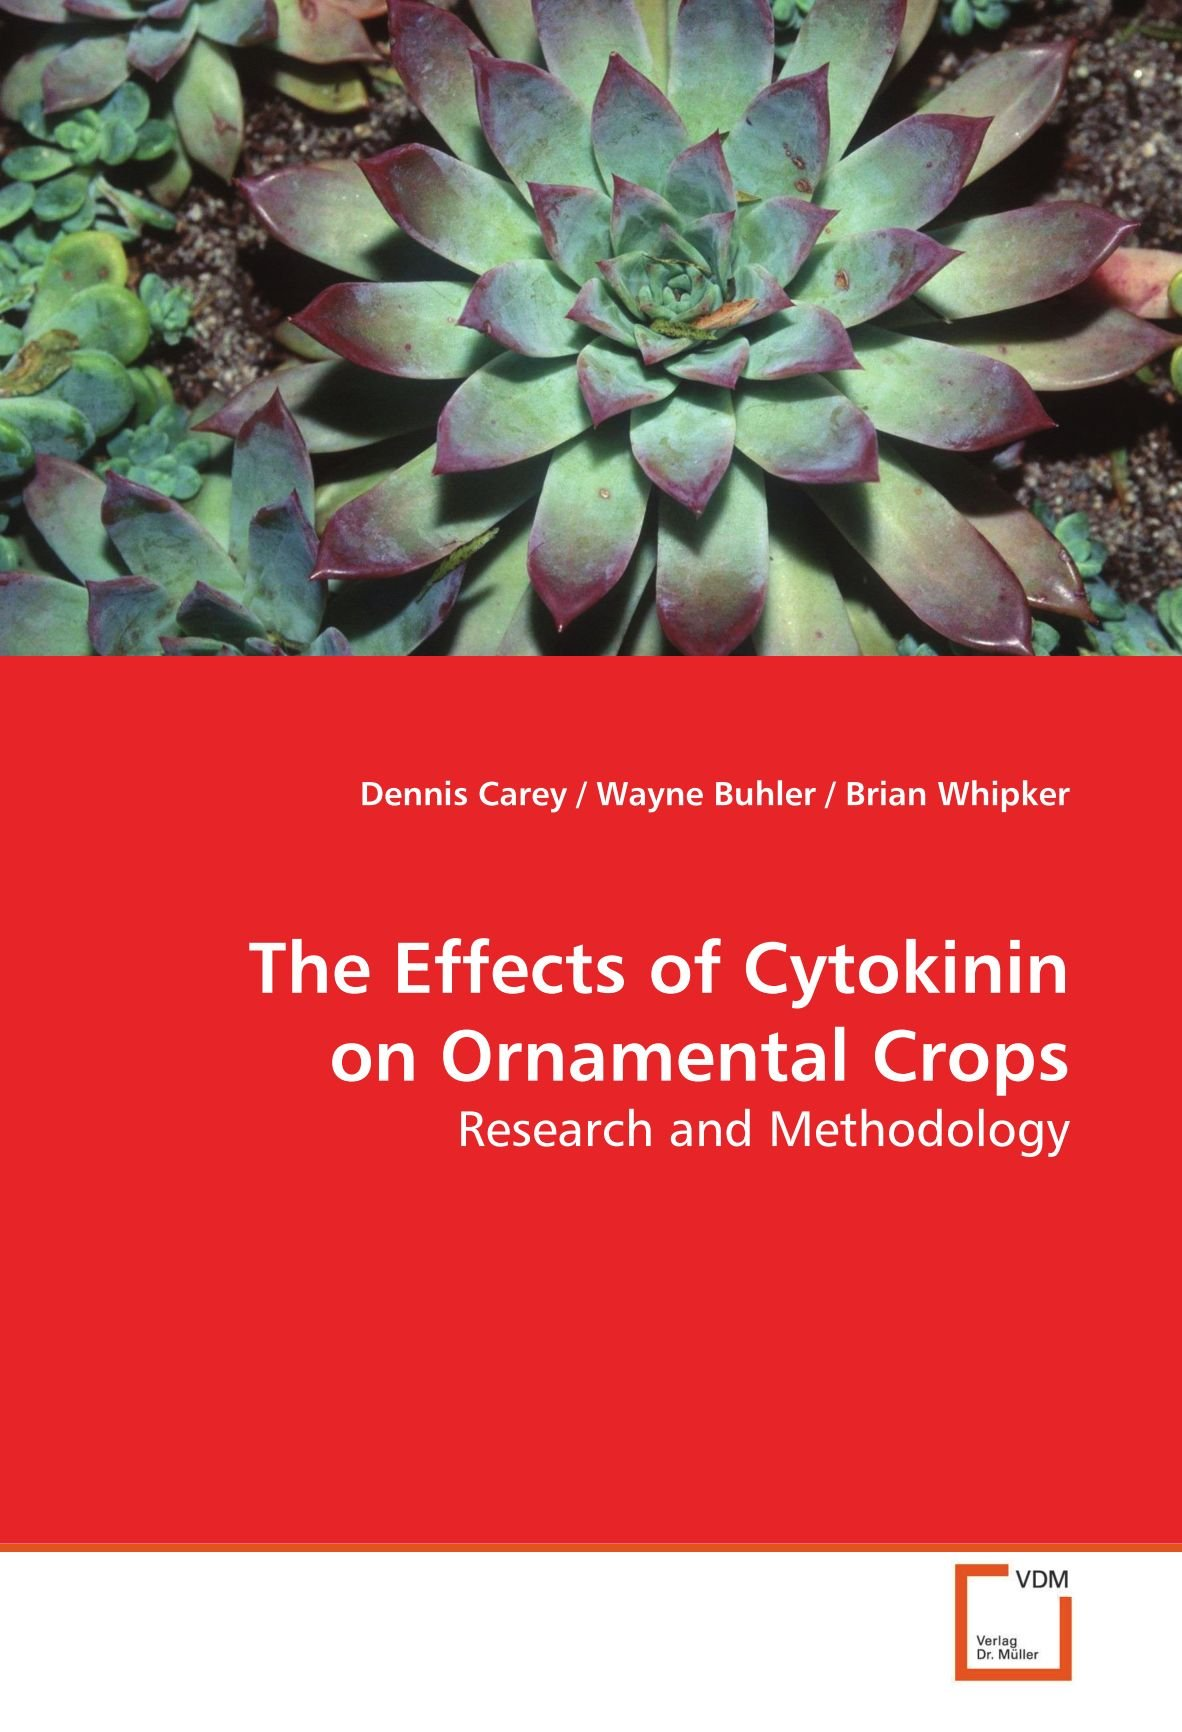 The Effects of Cytokinin on Ornamental Crops: Research and Methodology:  Amazon.de: Dennis Carey: Fremdsprachige Bücher